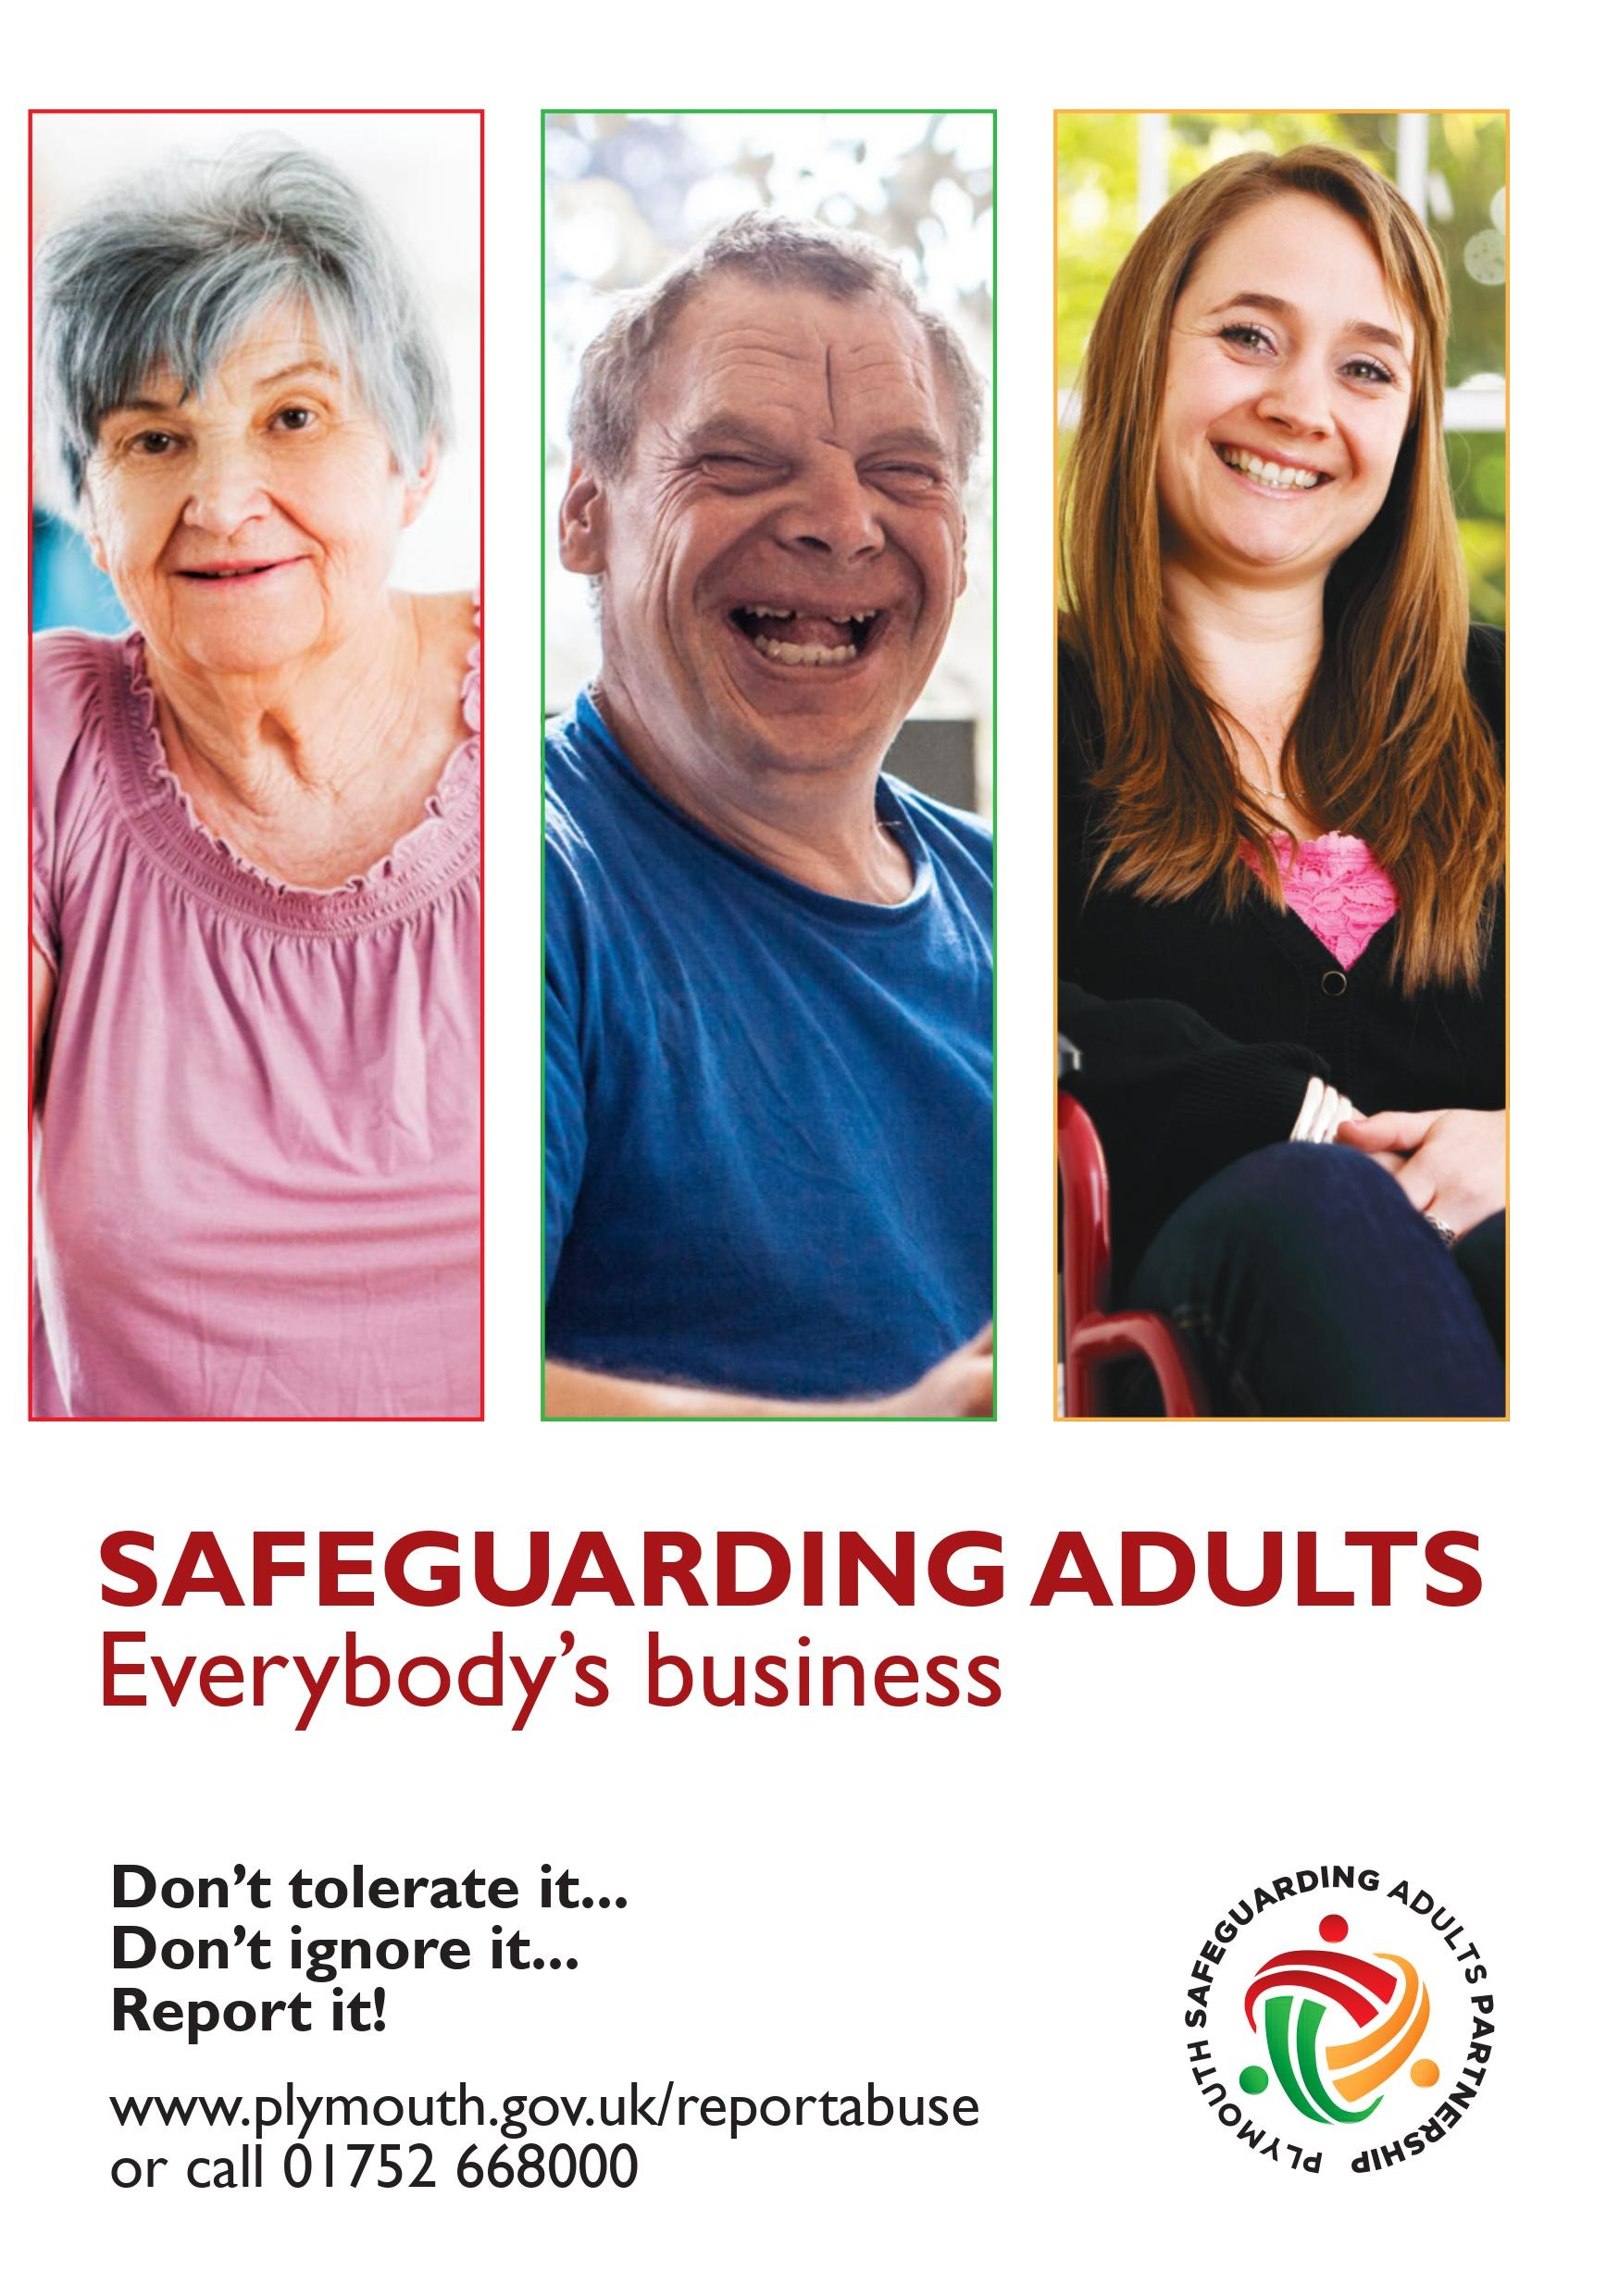 Plymouth Adult Safeguarding Leaflet Front Cover